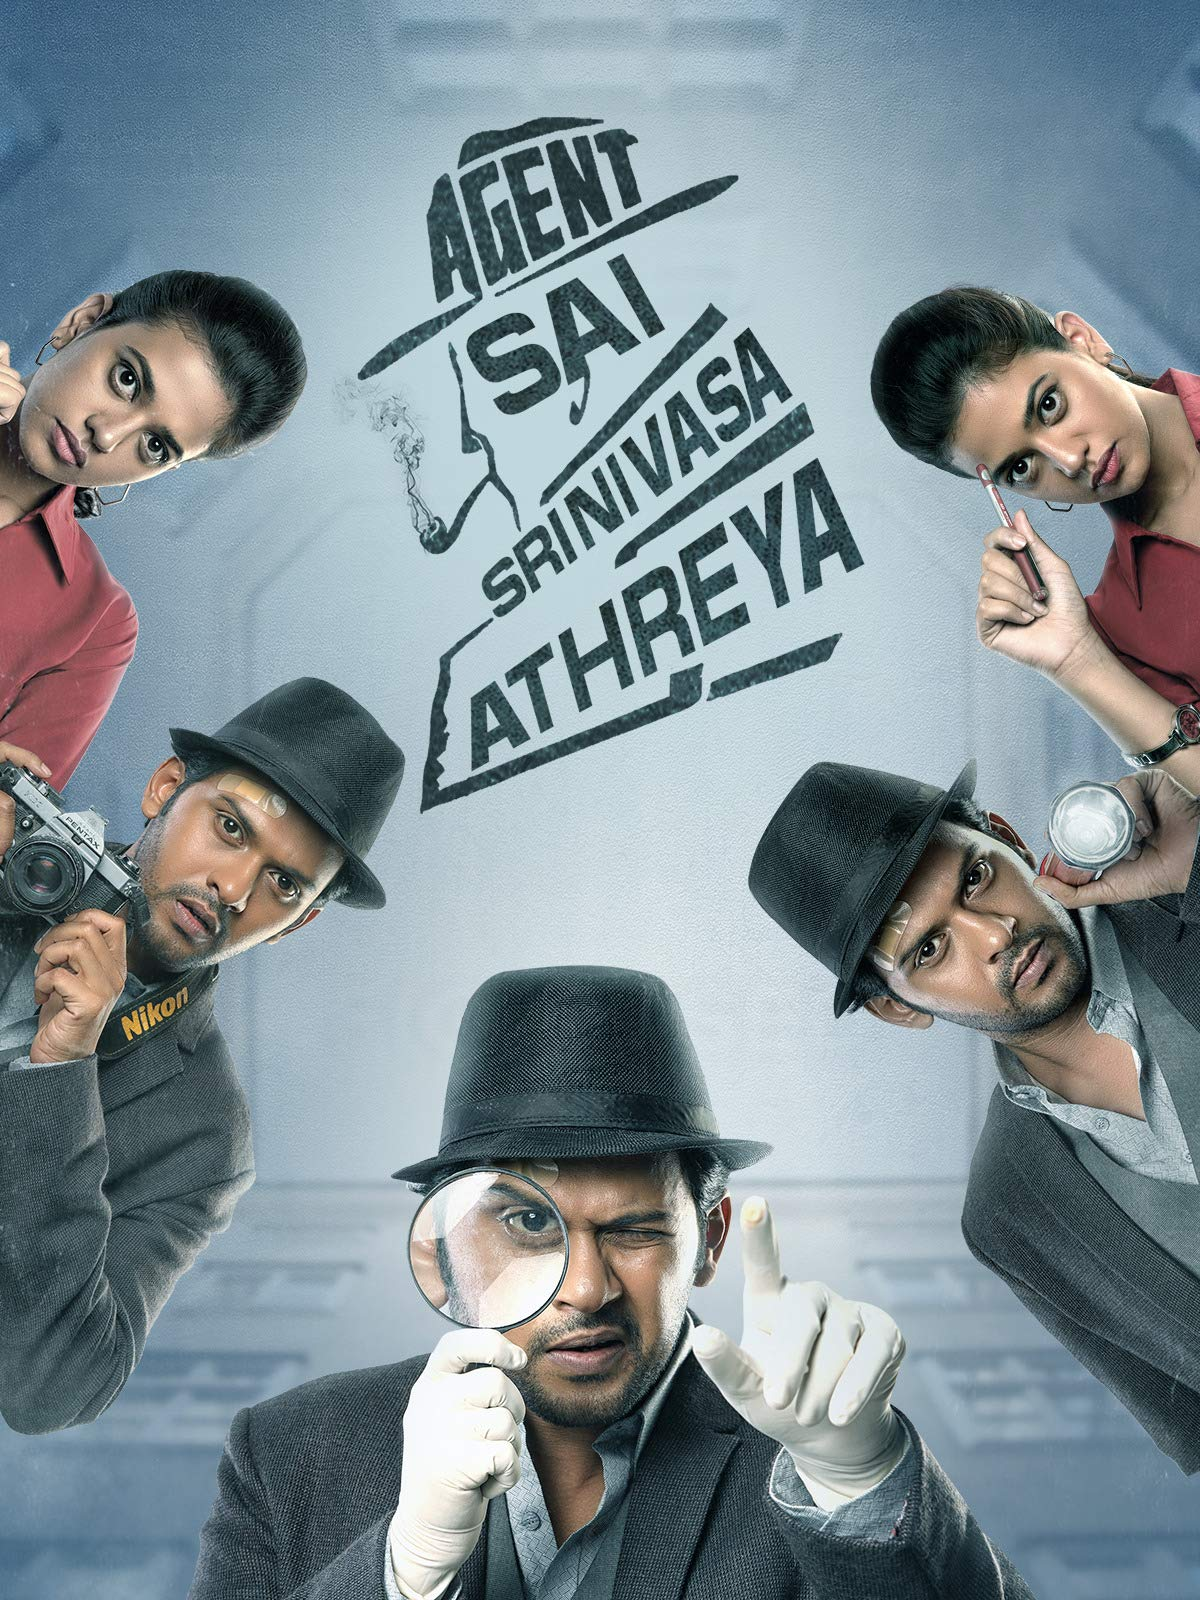 Agent Sai (Agent Sai Srinivasa Athreya) 2021 Hindi Dubbed 1080p HDRip 1.8GB Download